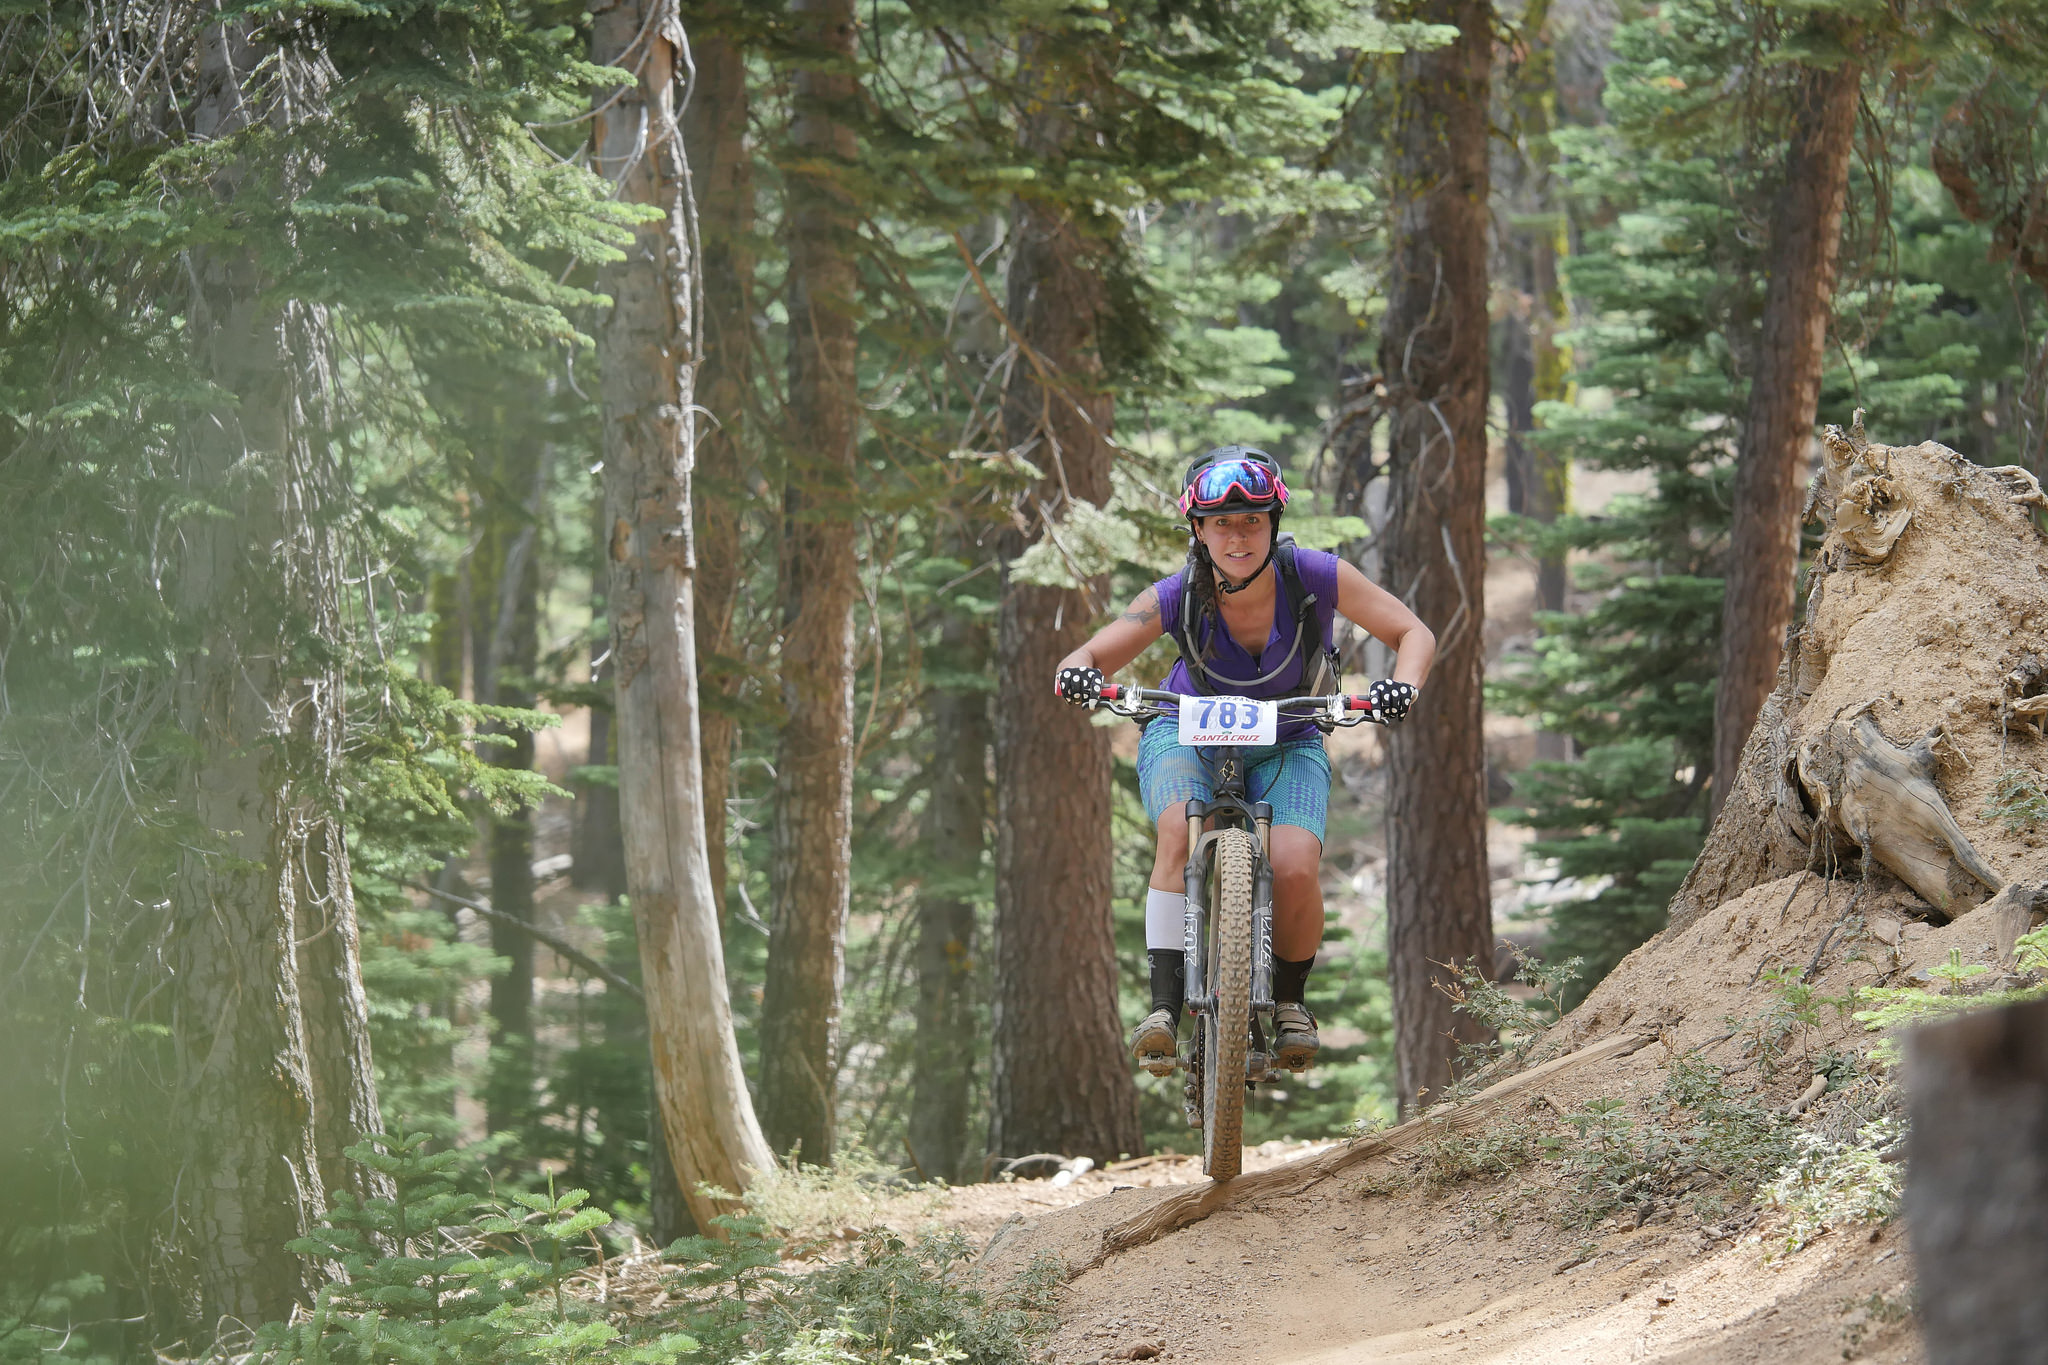 The Downieville Classic is an achievable goal even for beginner racers.